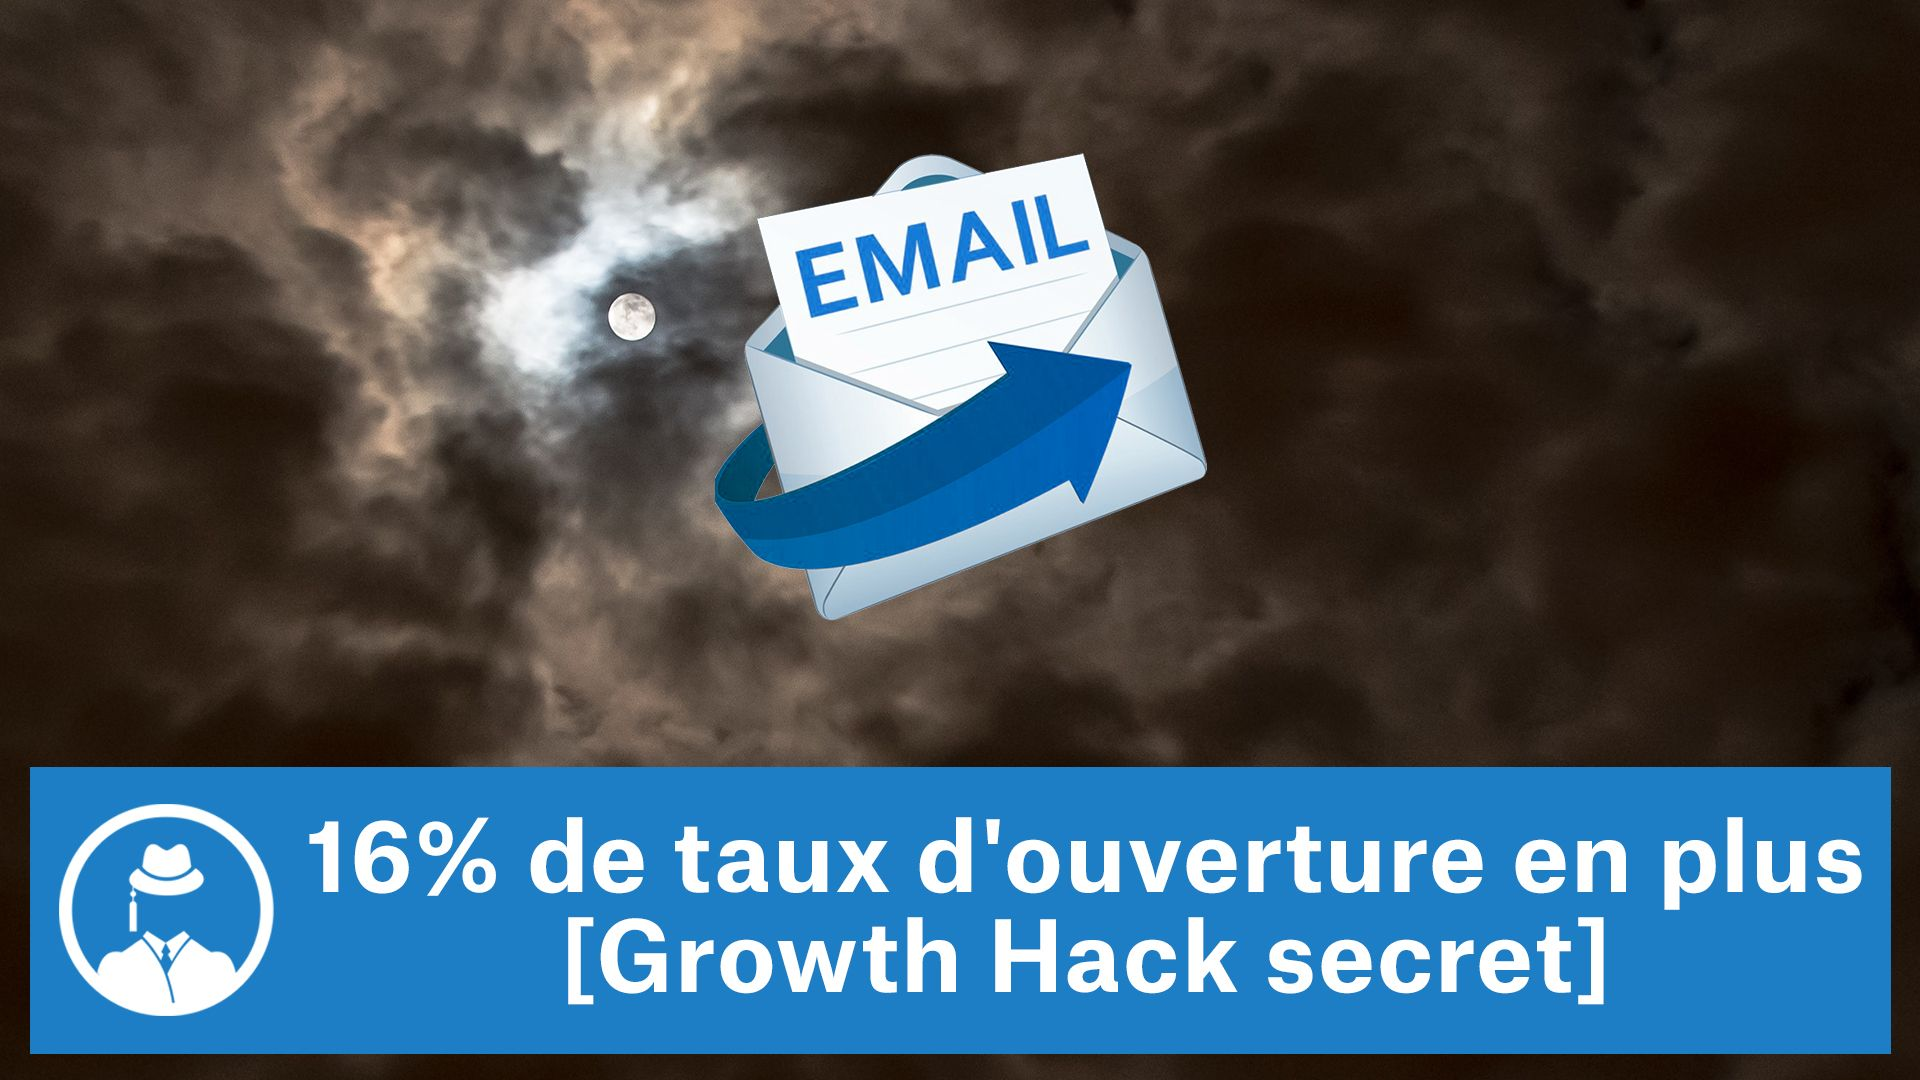 16% de taux d'ouverture supplémentaires [Growth Hack secret] #GrowthHacking #WebMarketing #FormationGrowthHacking #CentreDeFormationFrance #TunnelAARRR #AARRR #SocialMedia #CommunityManagement #SEO #MarketingDigital #SiteWeb